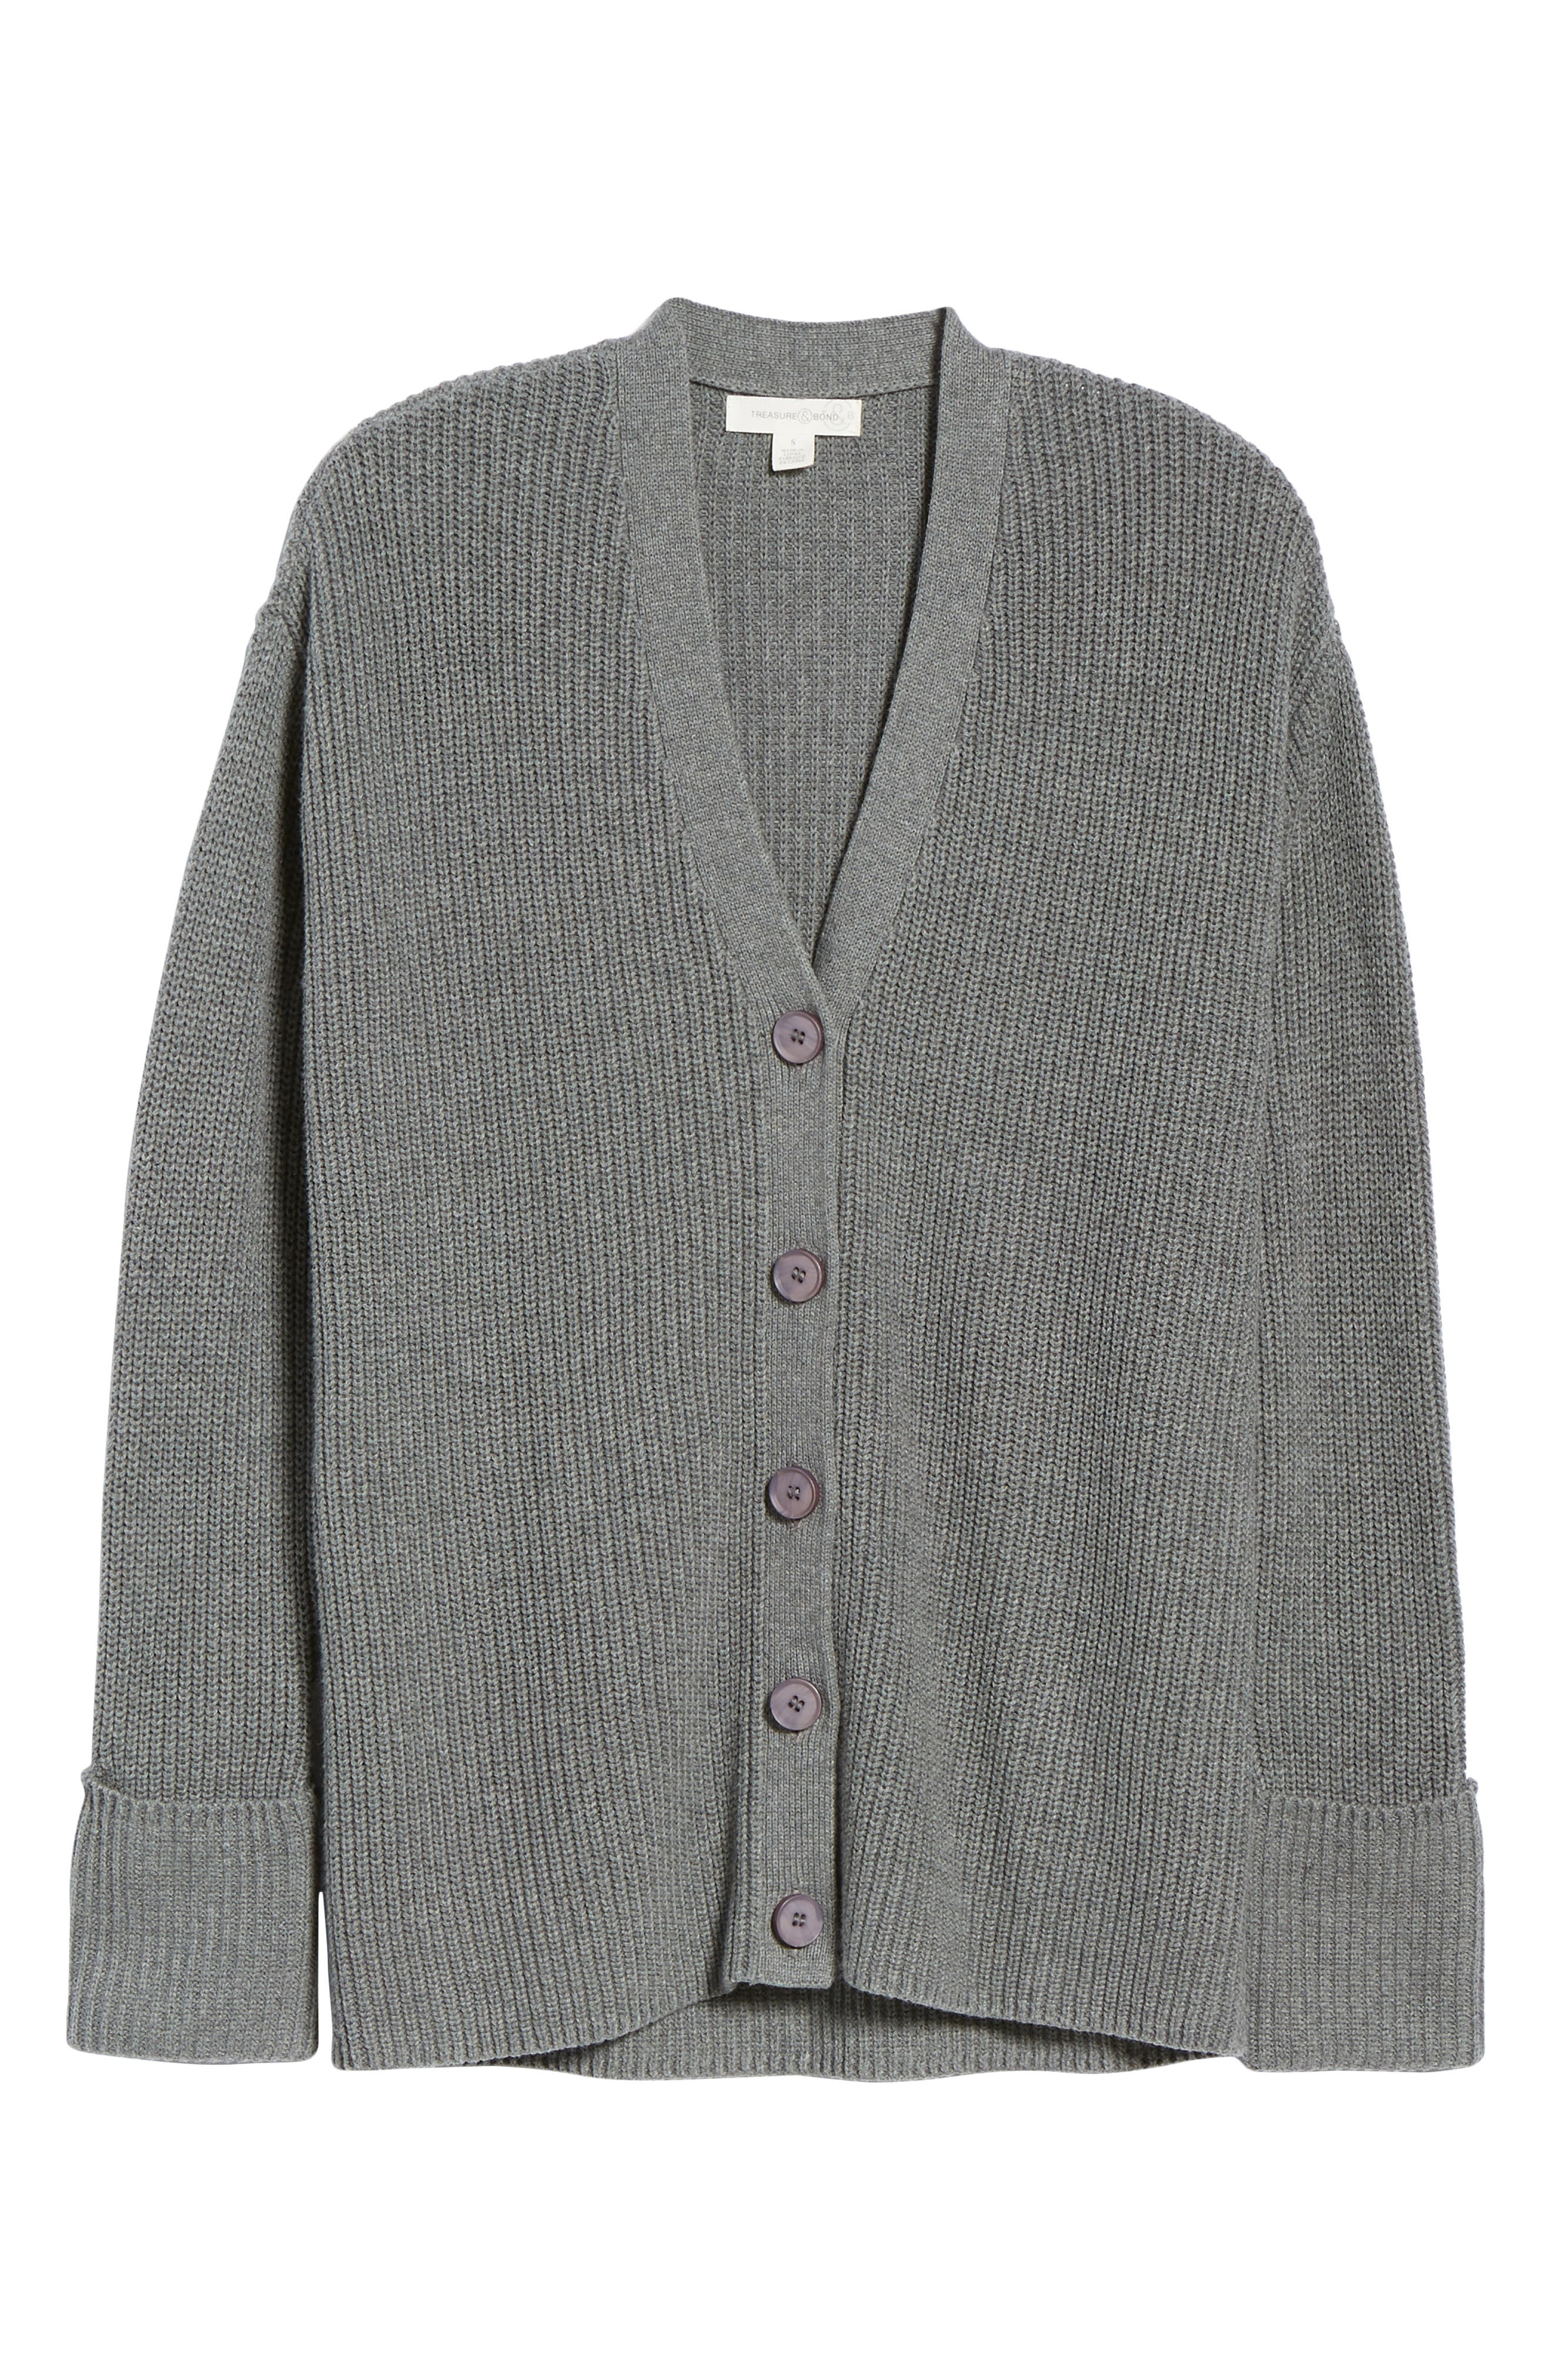 Ribbed Cardigan Sweater,                             Alternate thumbnail 6, color,                             GREY DARK HEATHER